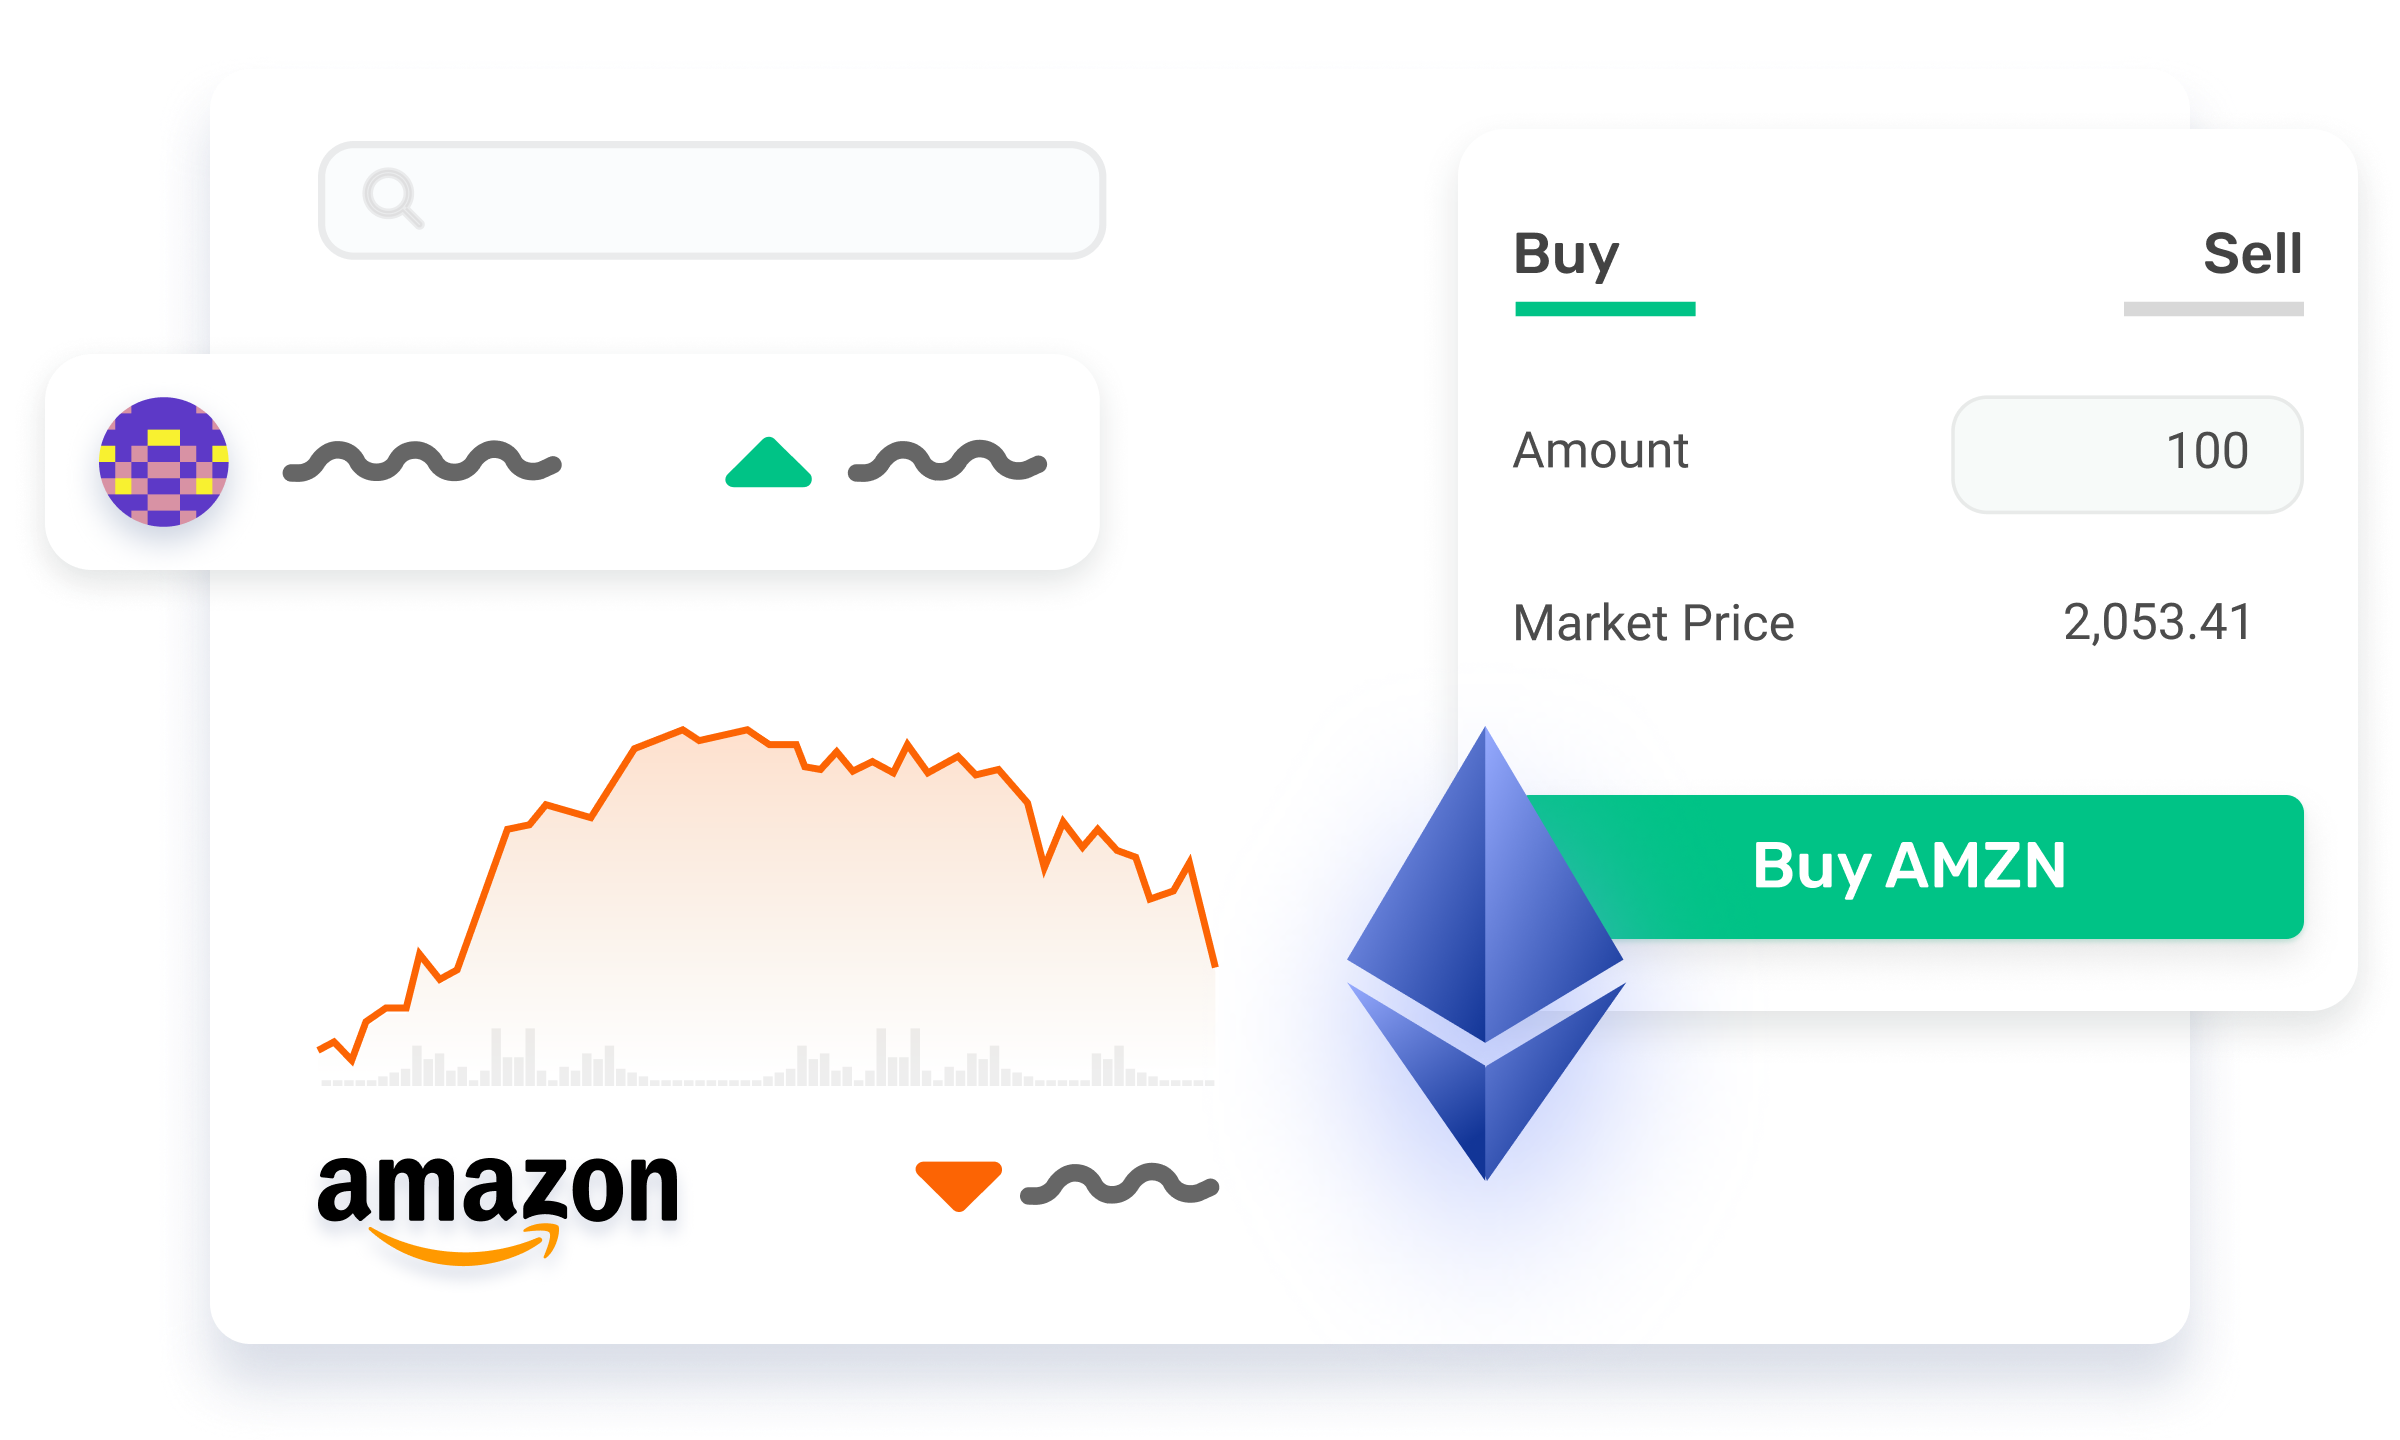 Morpher investment app mockup with focus on Amazon stock.